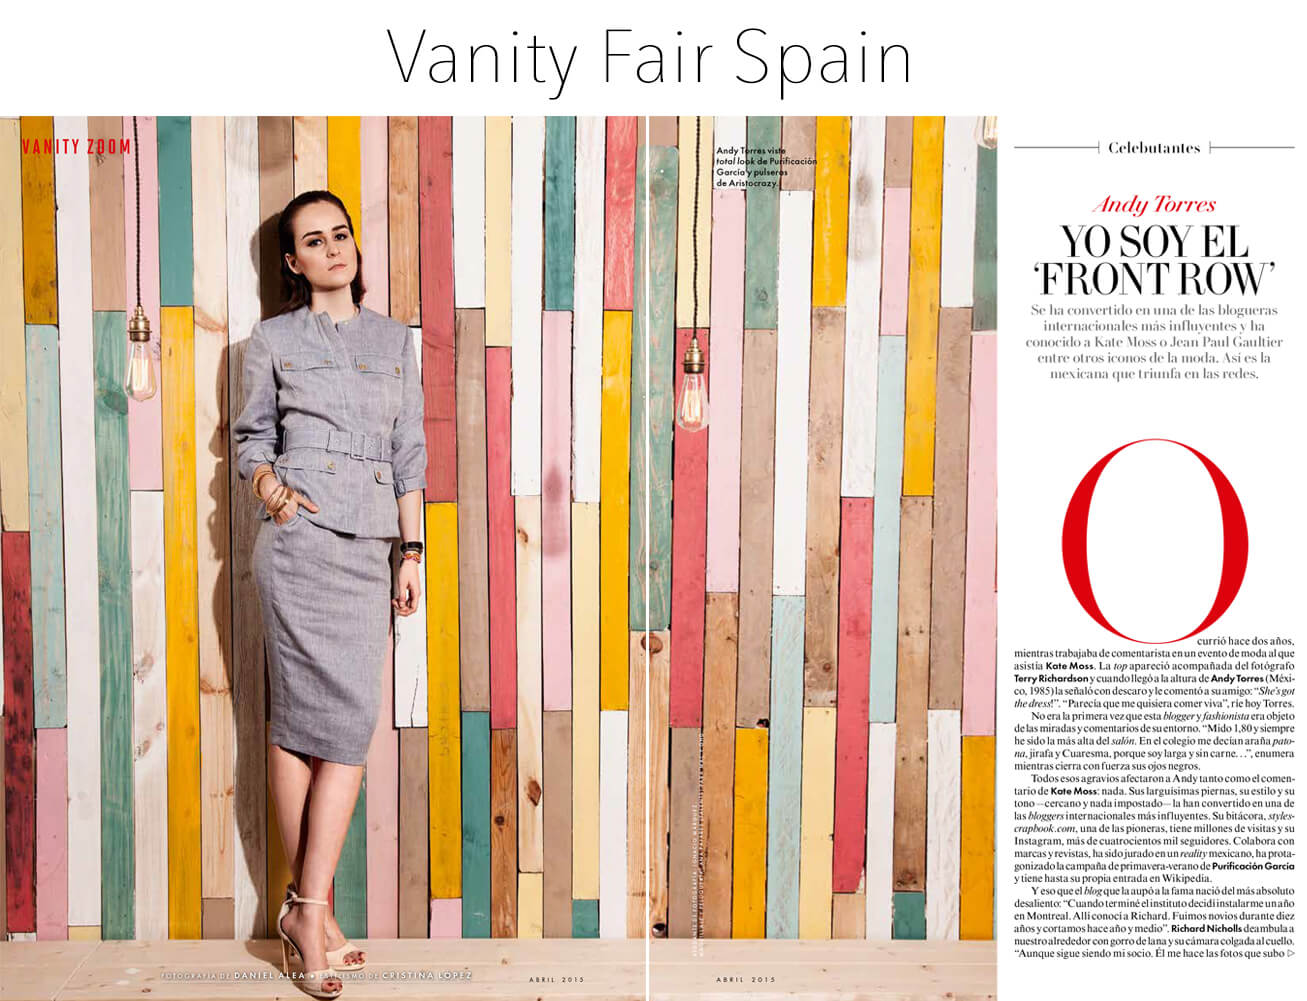 Andy Torres article on Vanity Fair Spain